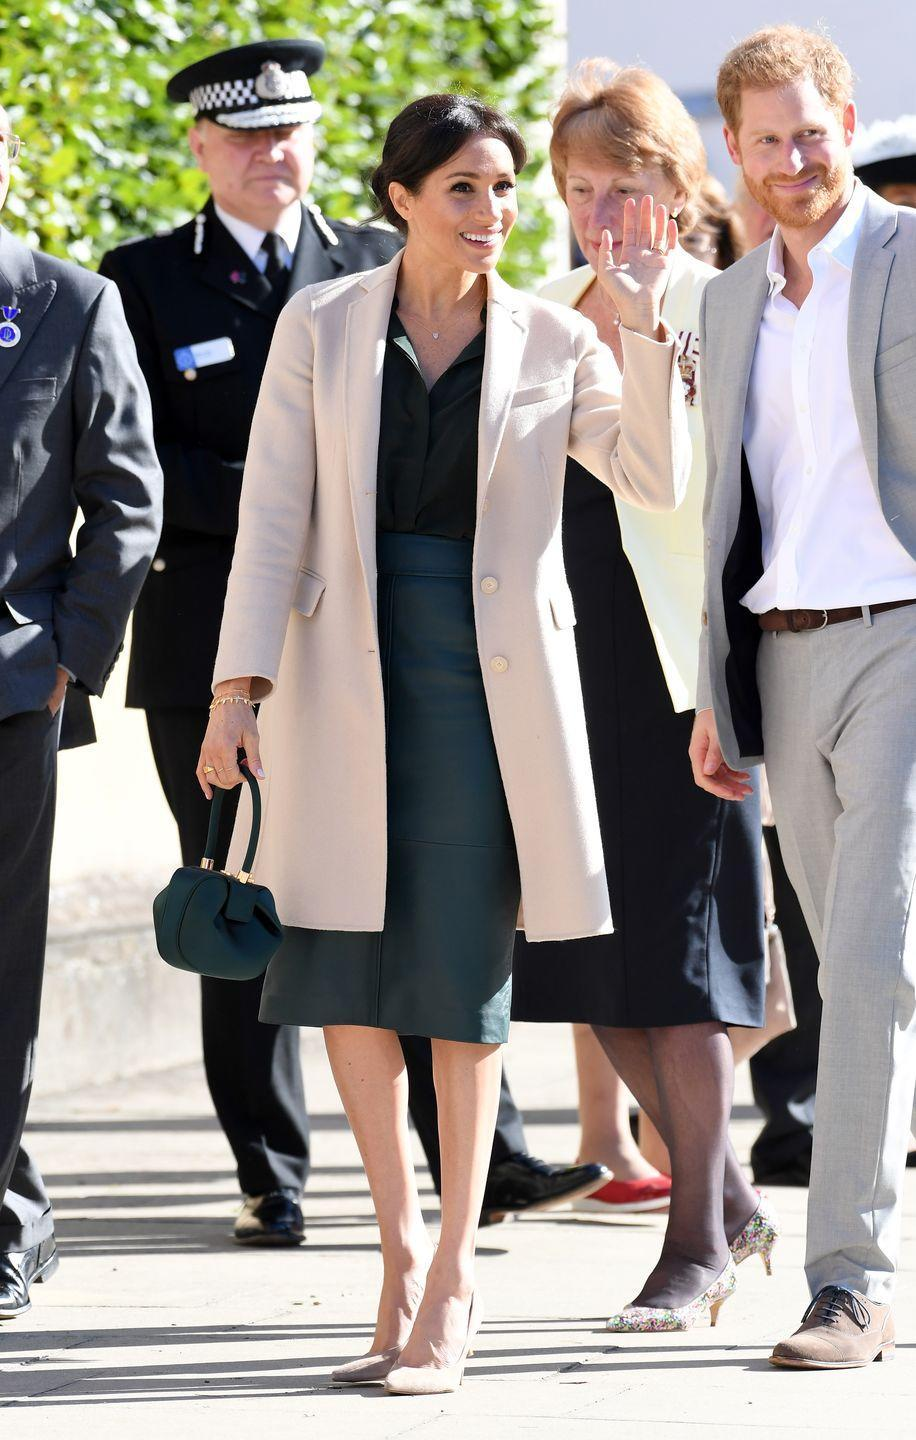 <p>For her inaugural visit to Sussex, Meghan wore a cream-colored Georgia Armani coat over a green leather Hugo Boss skirt and & Other Stories blouse. She also carried a small green top-handled bag.</p>